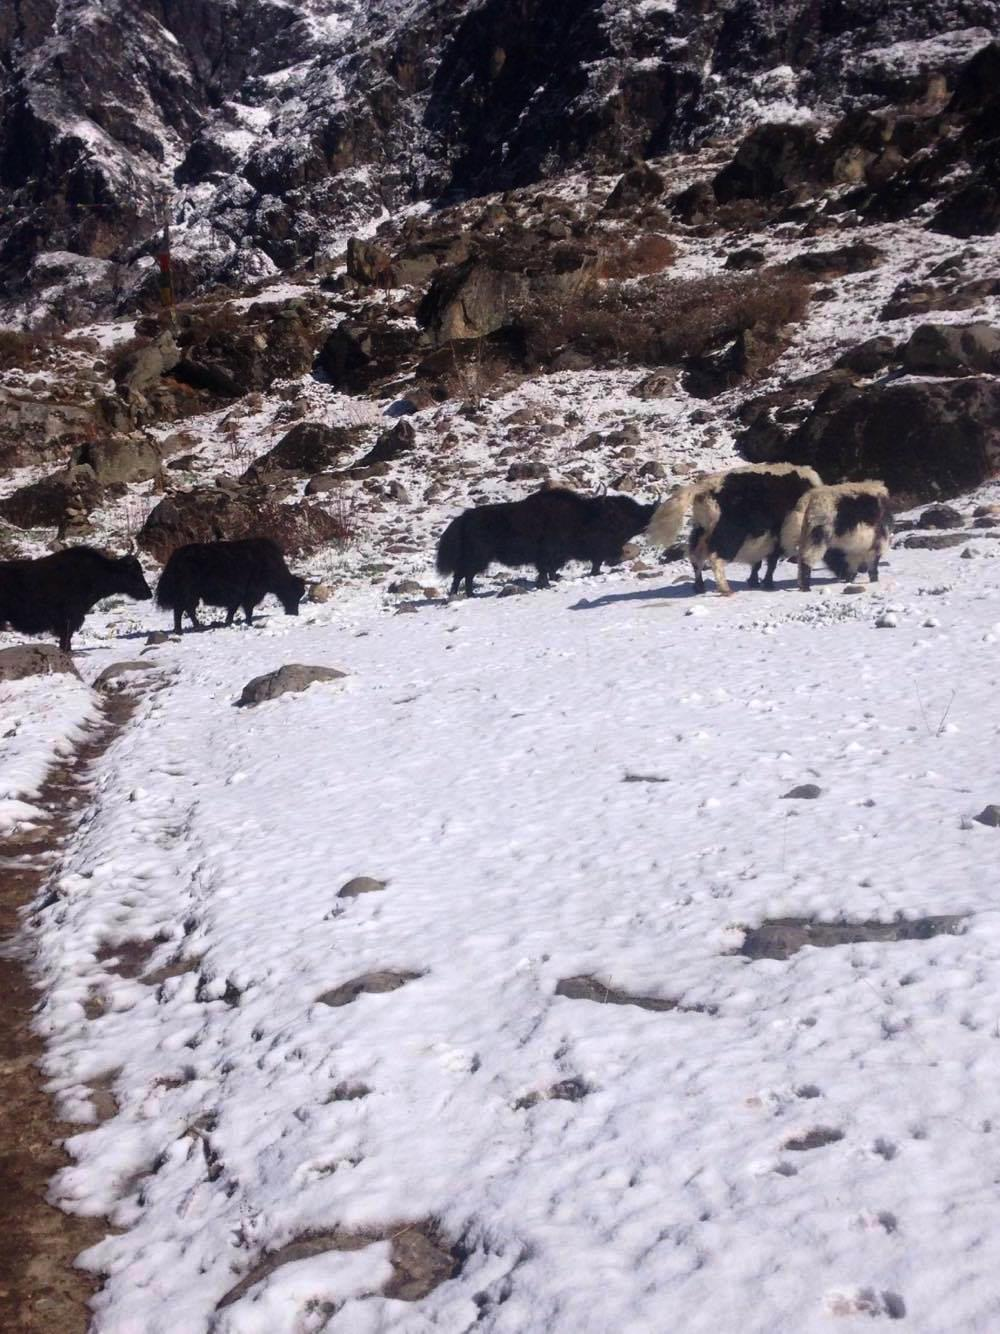 Langtang_Yaks_April_2016_Adventure_Alternative_Nepal.jpg